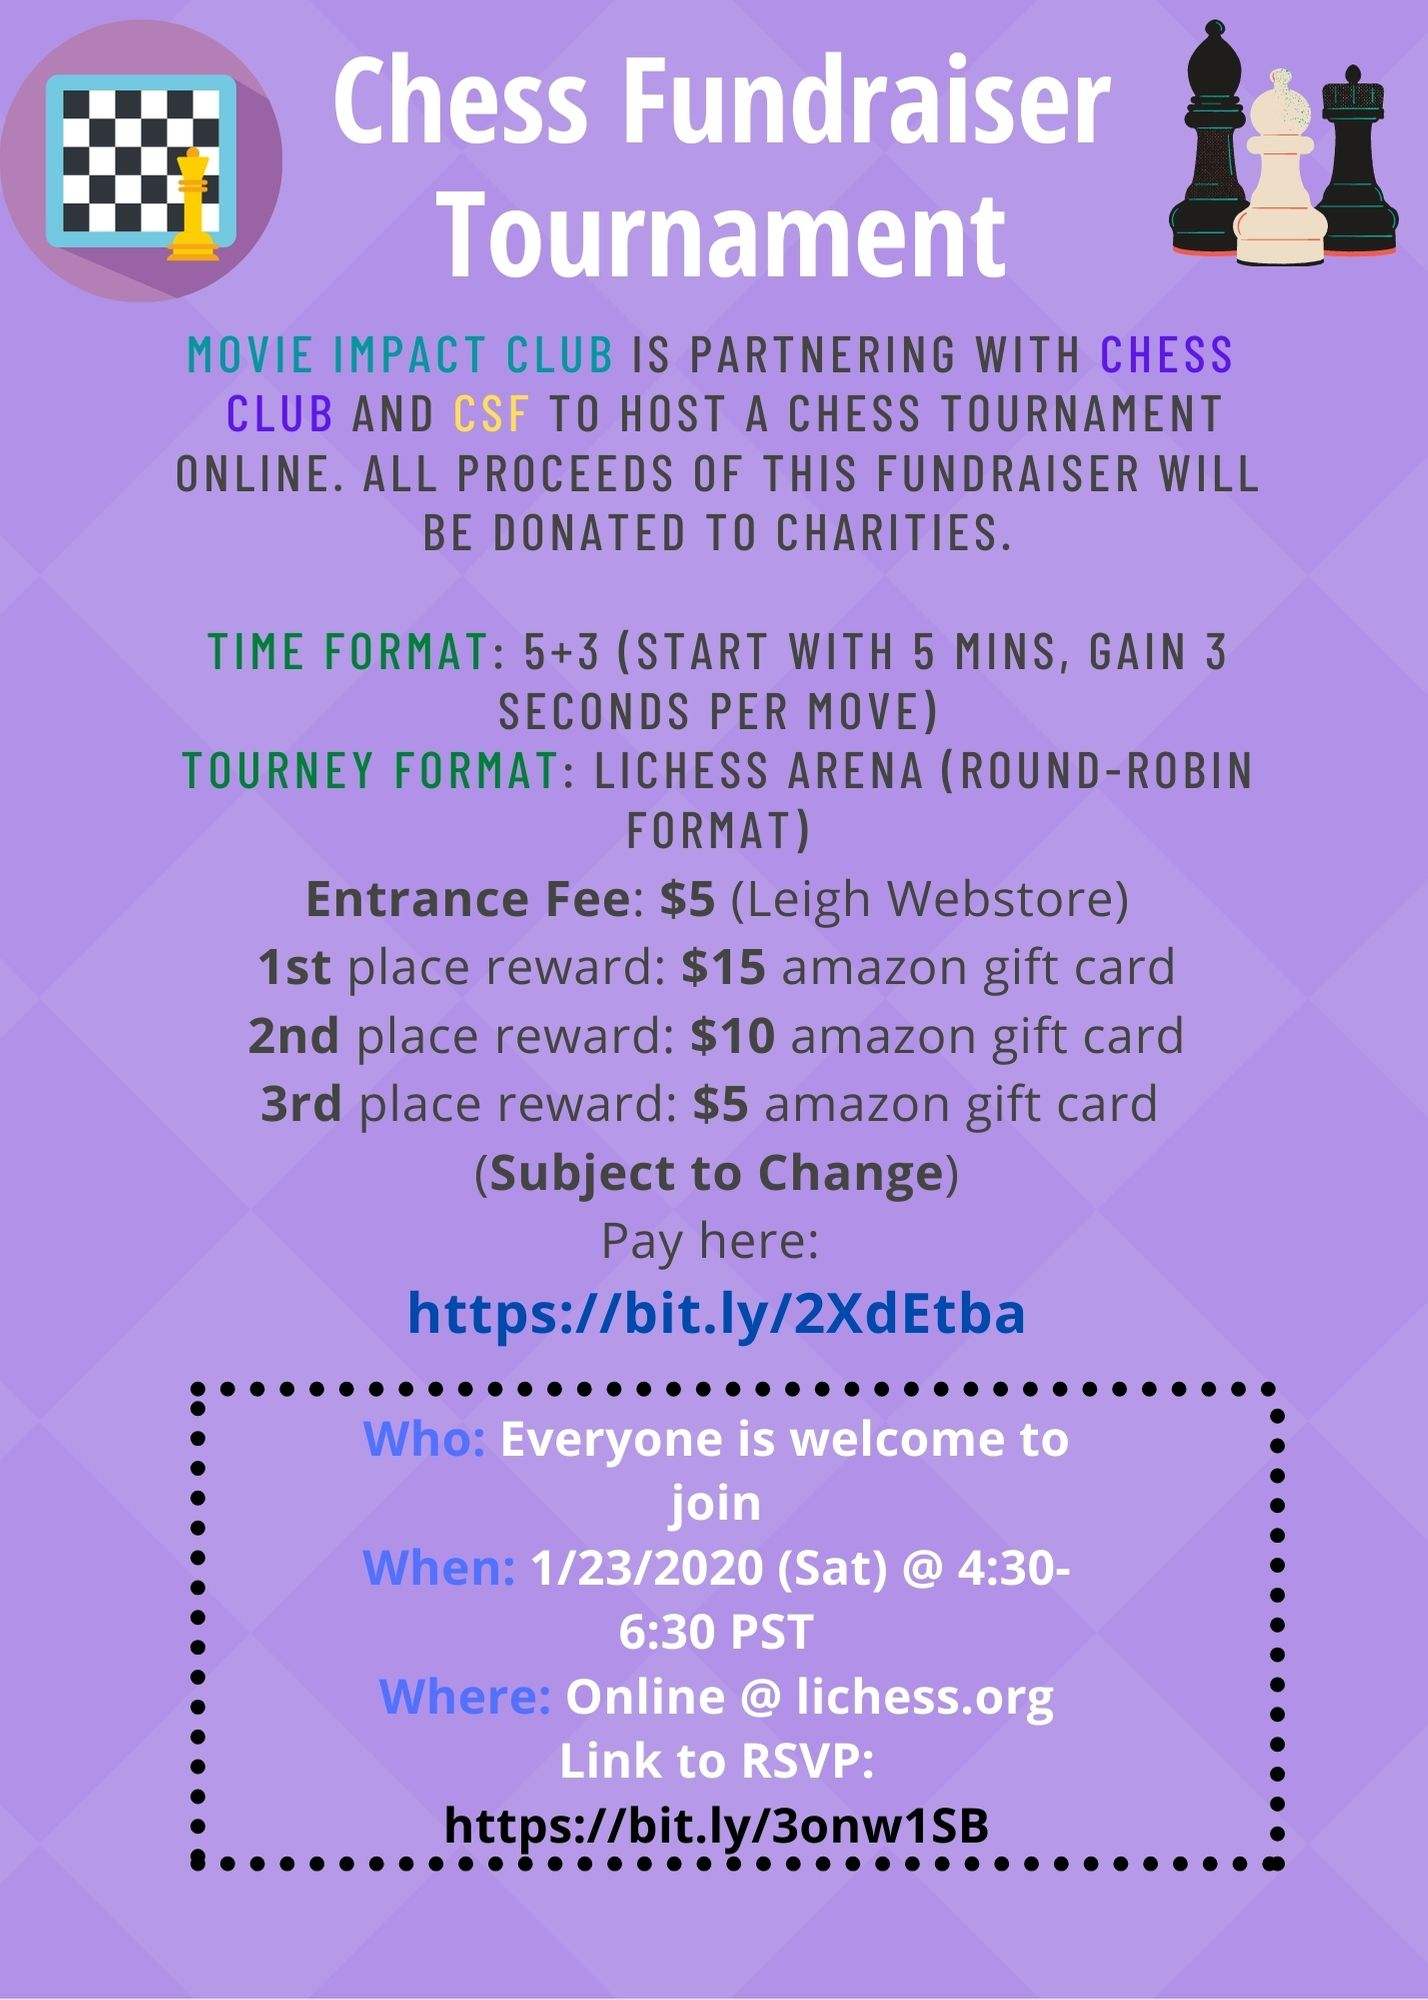 Chess Fundraiser Tournament